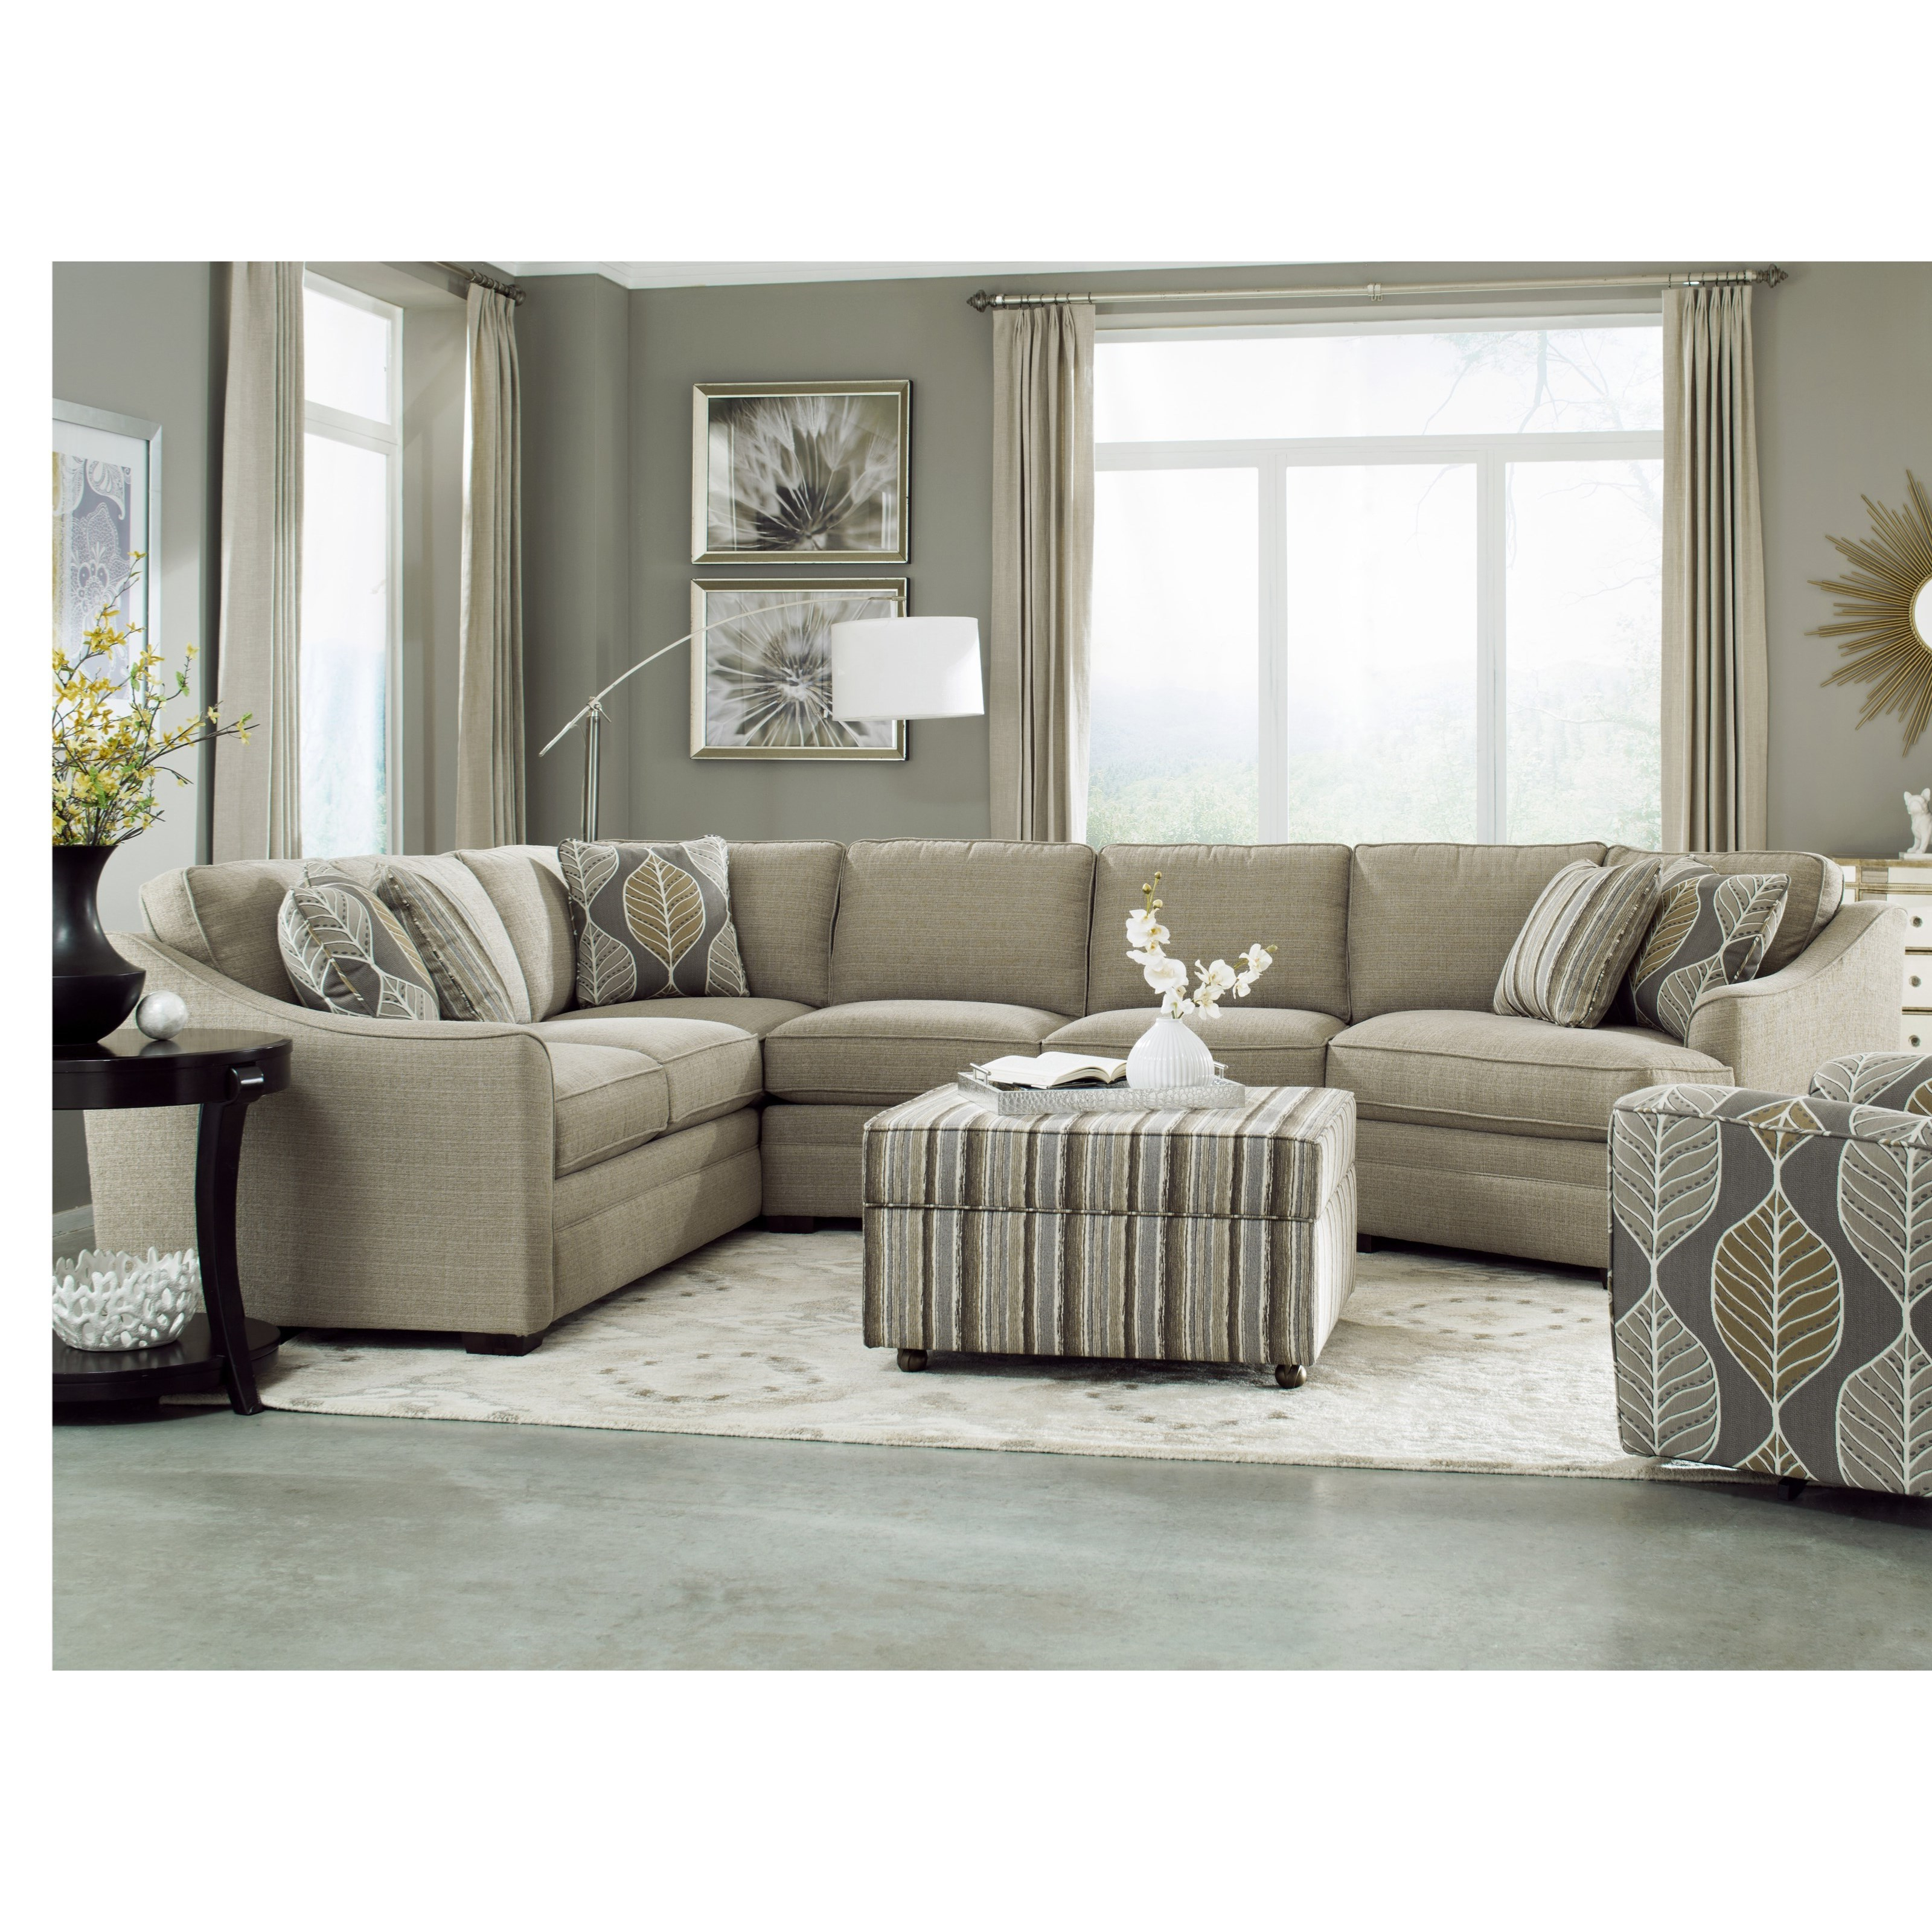 Preferred Avery 2 Piece Sectionals With Laf Armless Chaise Inside Hickory Craft F9 Custom Collection <B>Customizable</b> 3 Piece (Gallery 20 of 20)